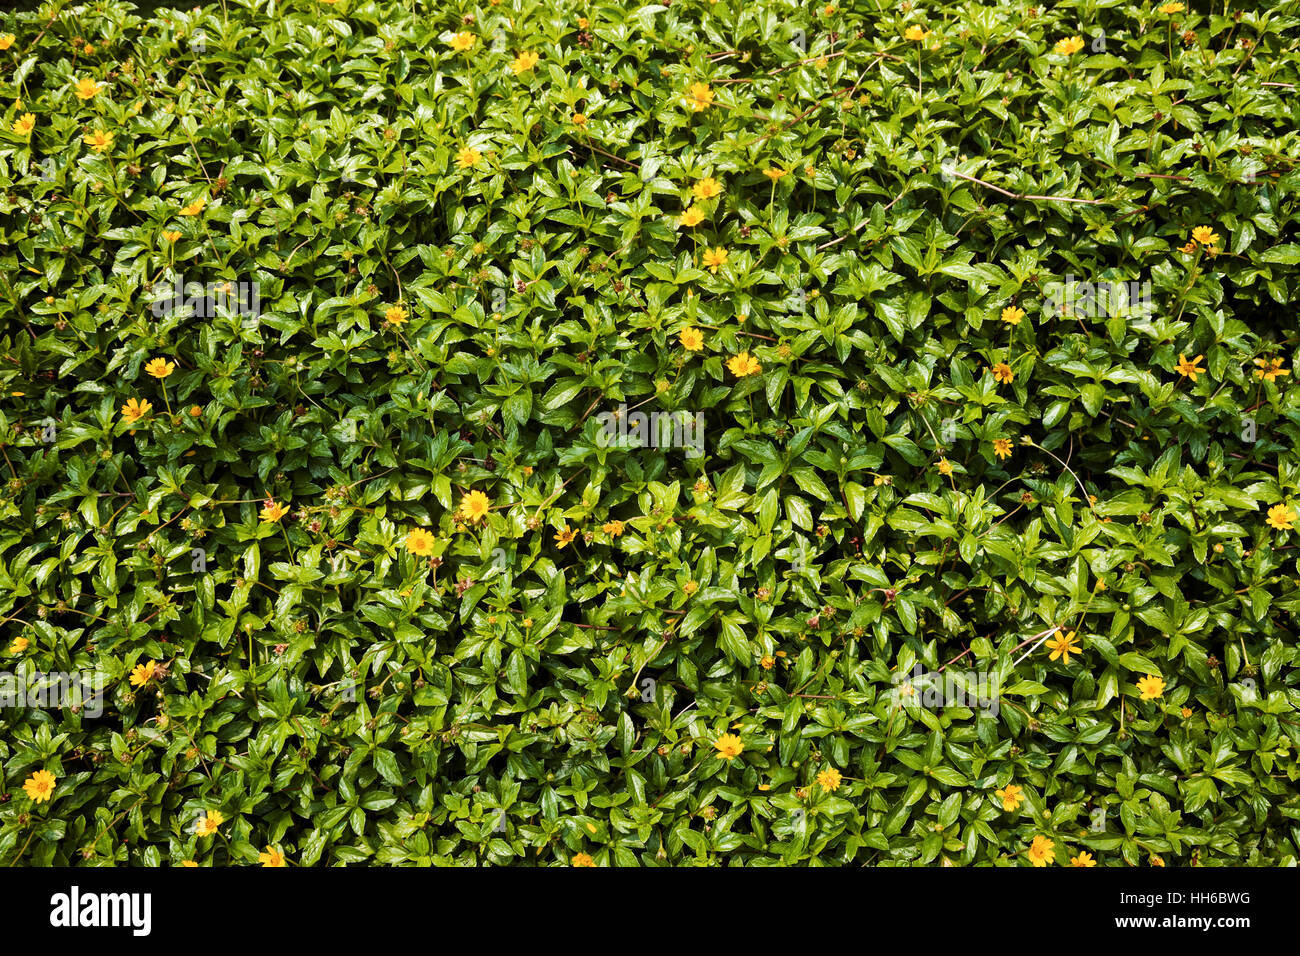 Small Yellow Lawn Flowers Background Butter Daisy Herb In The Stock